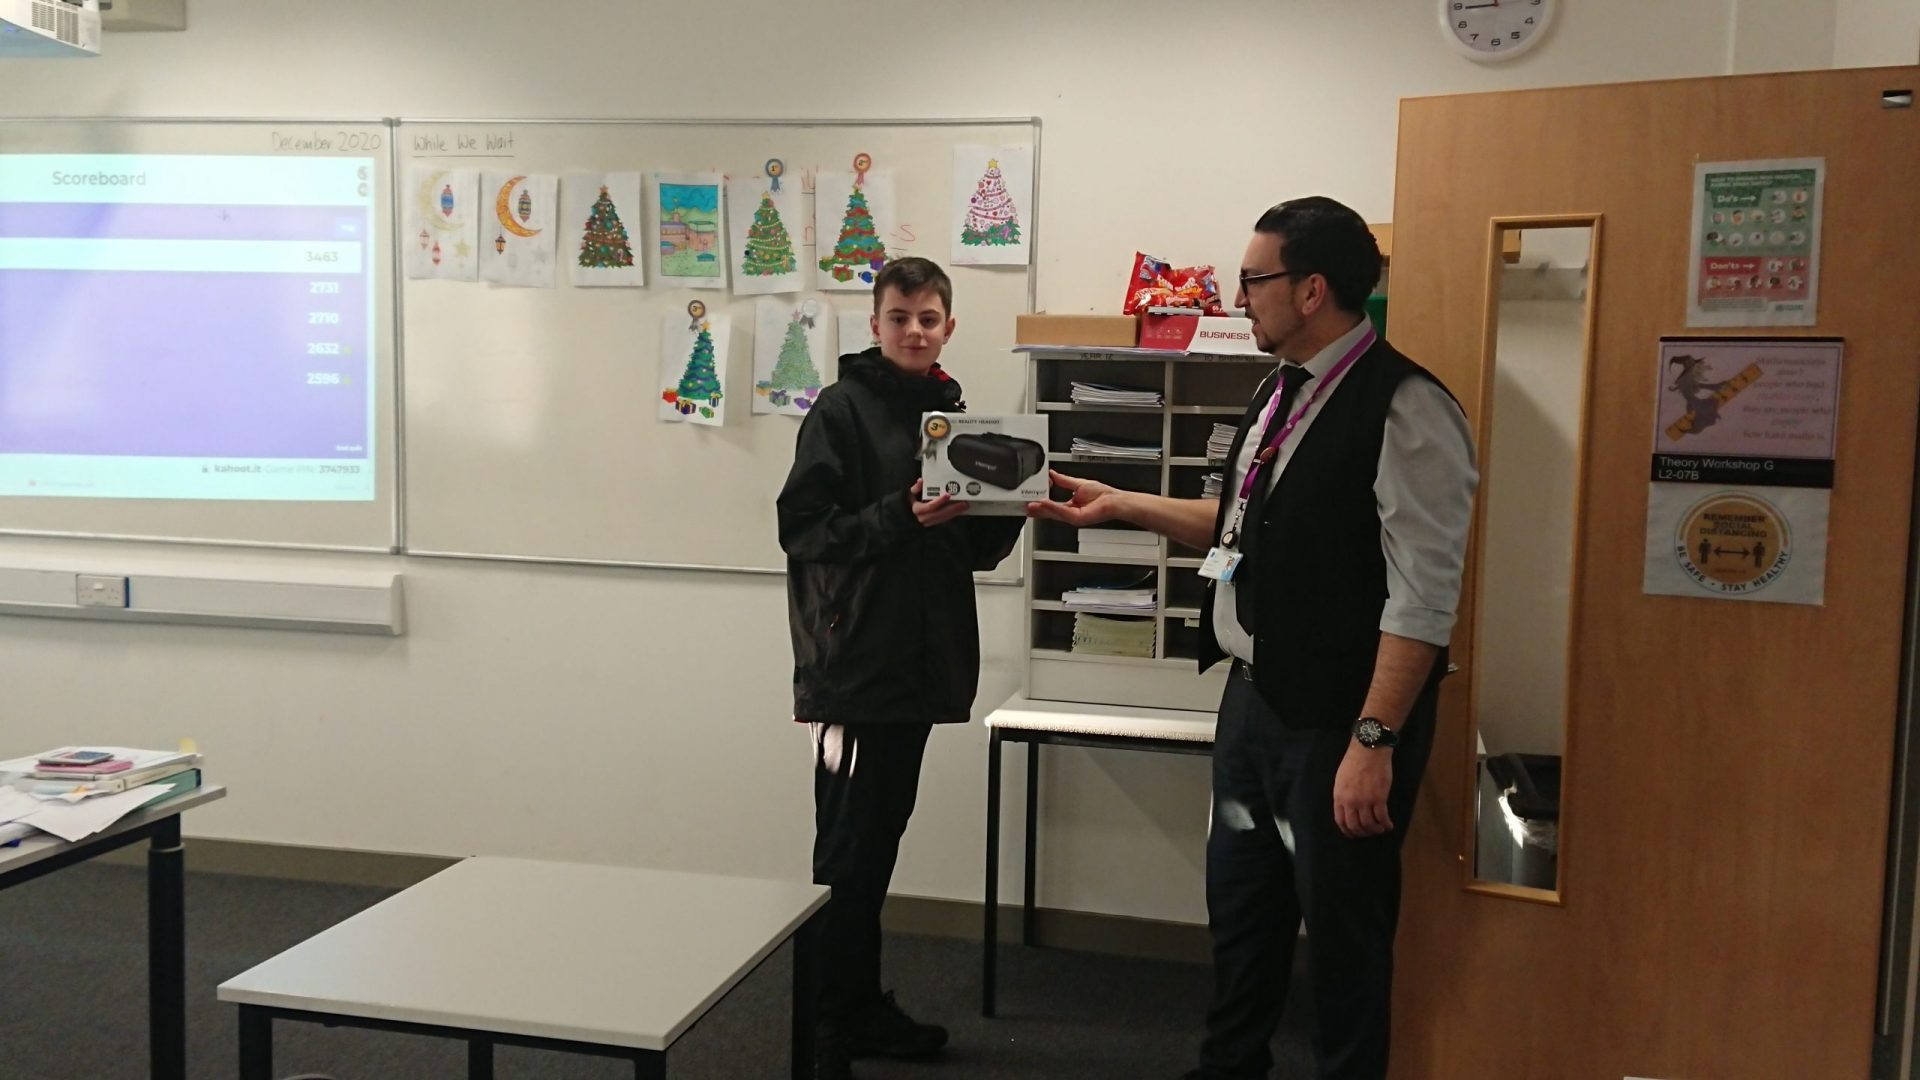 Male student holding VR headset prize